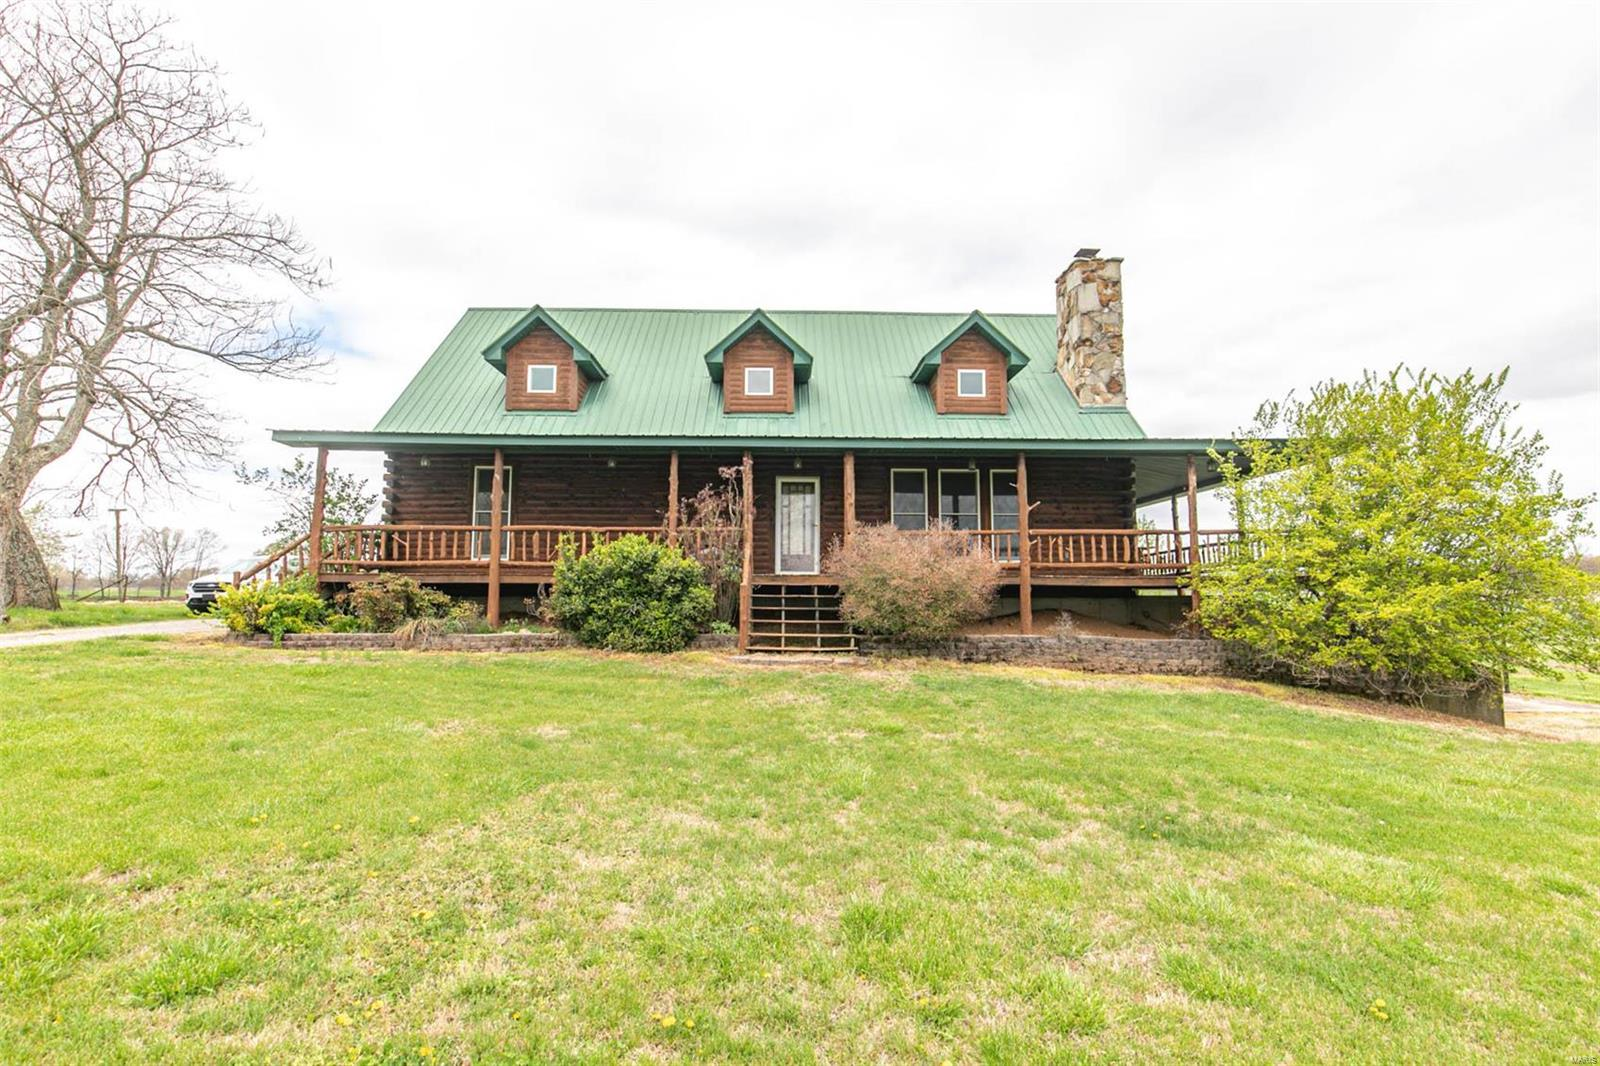 7521 Ripley Rt. A Property Photo - Doniphan, MO real estate listing